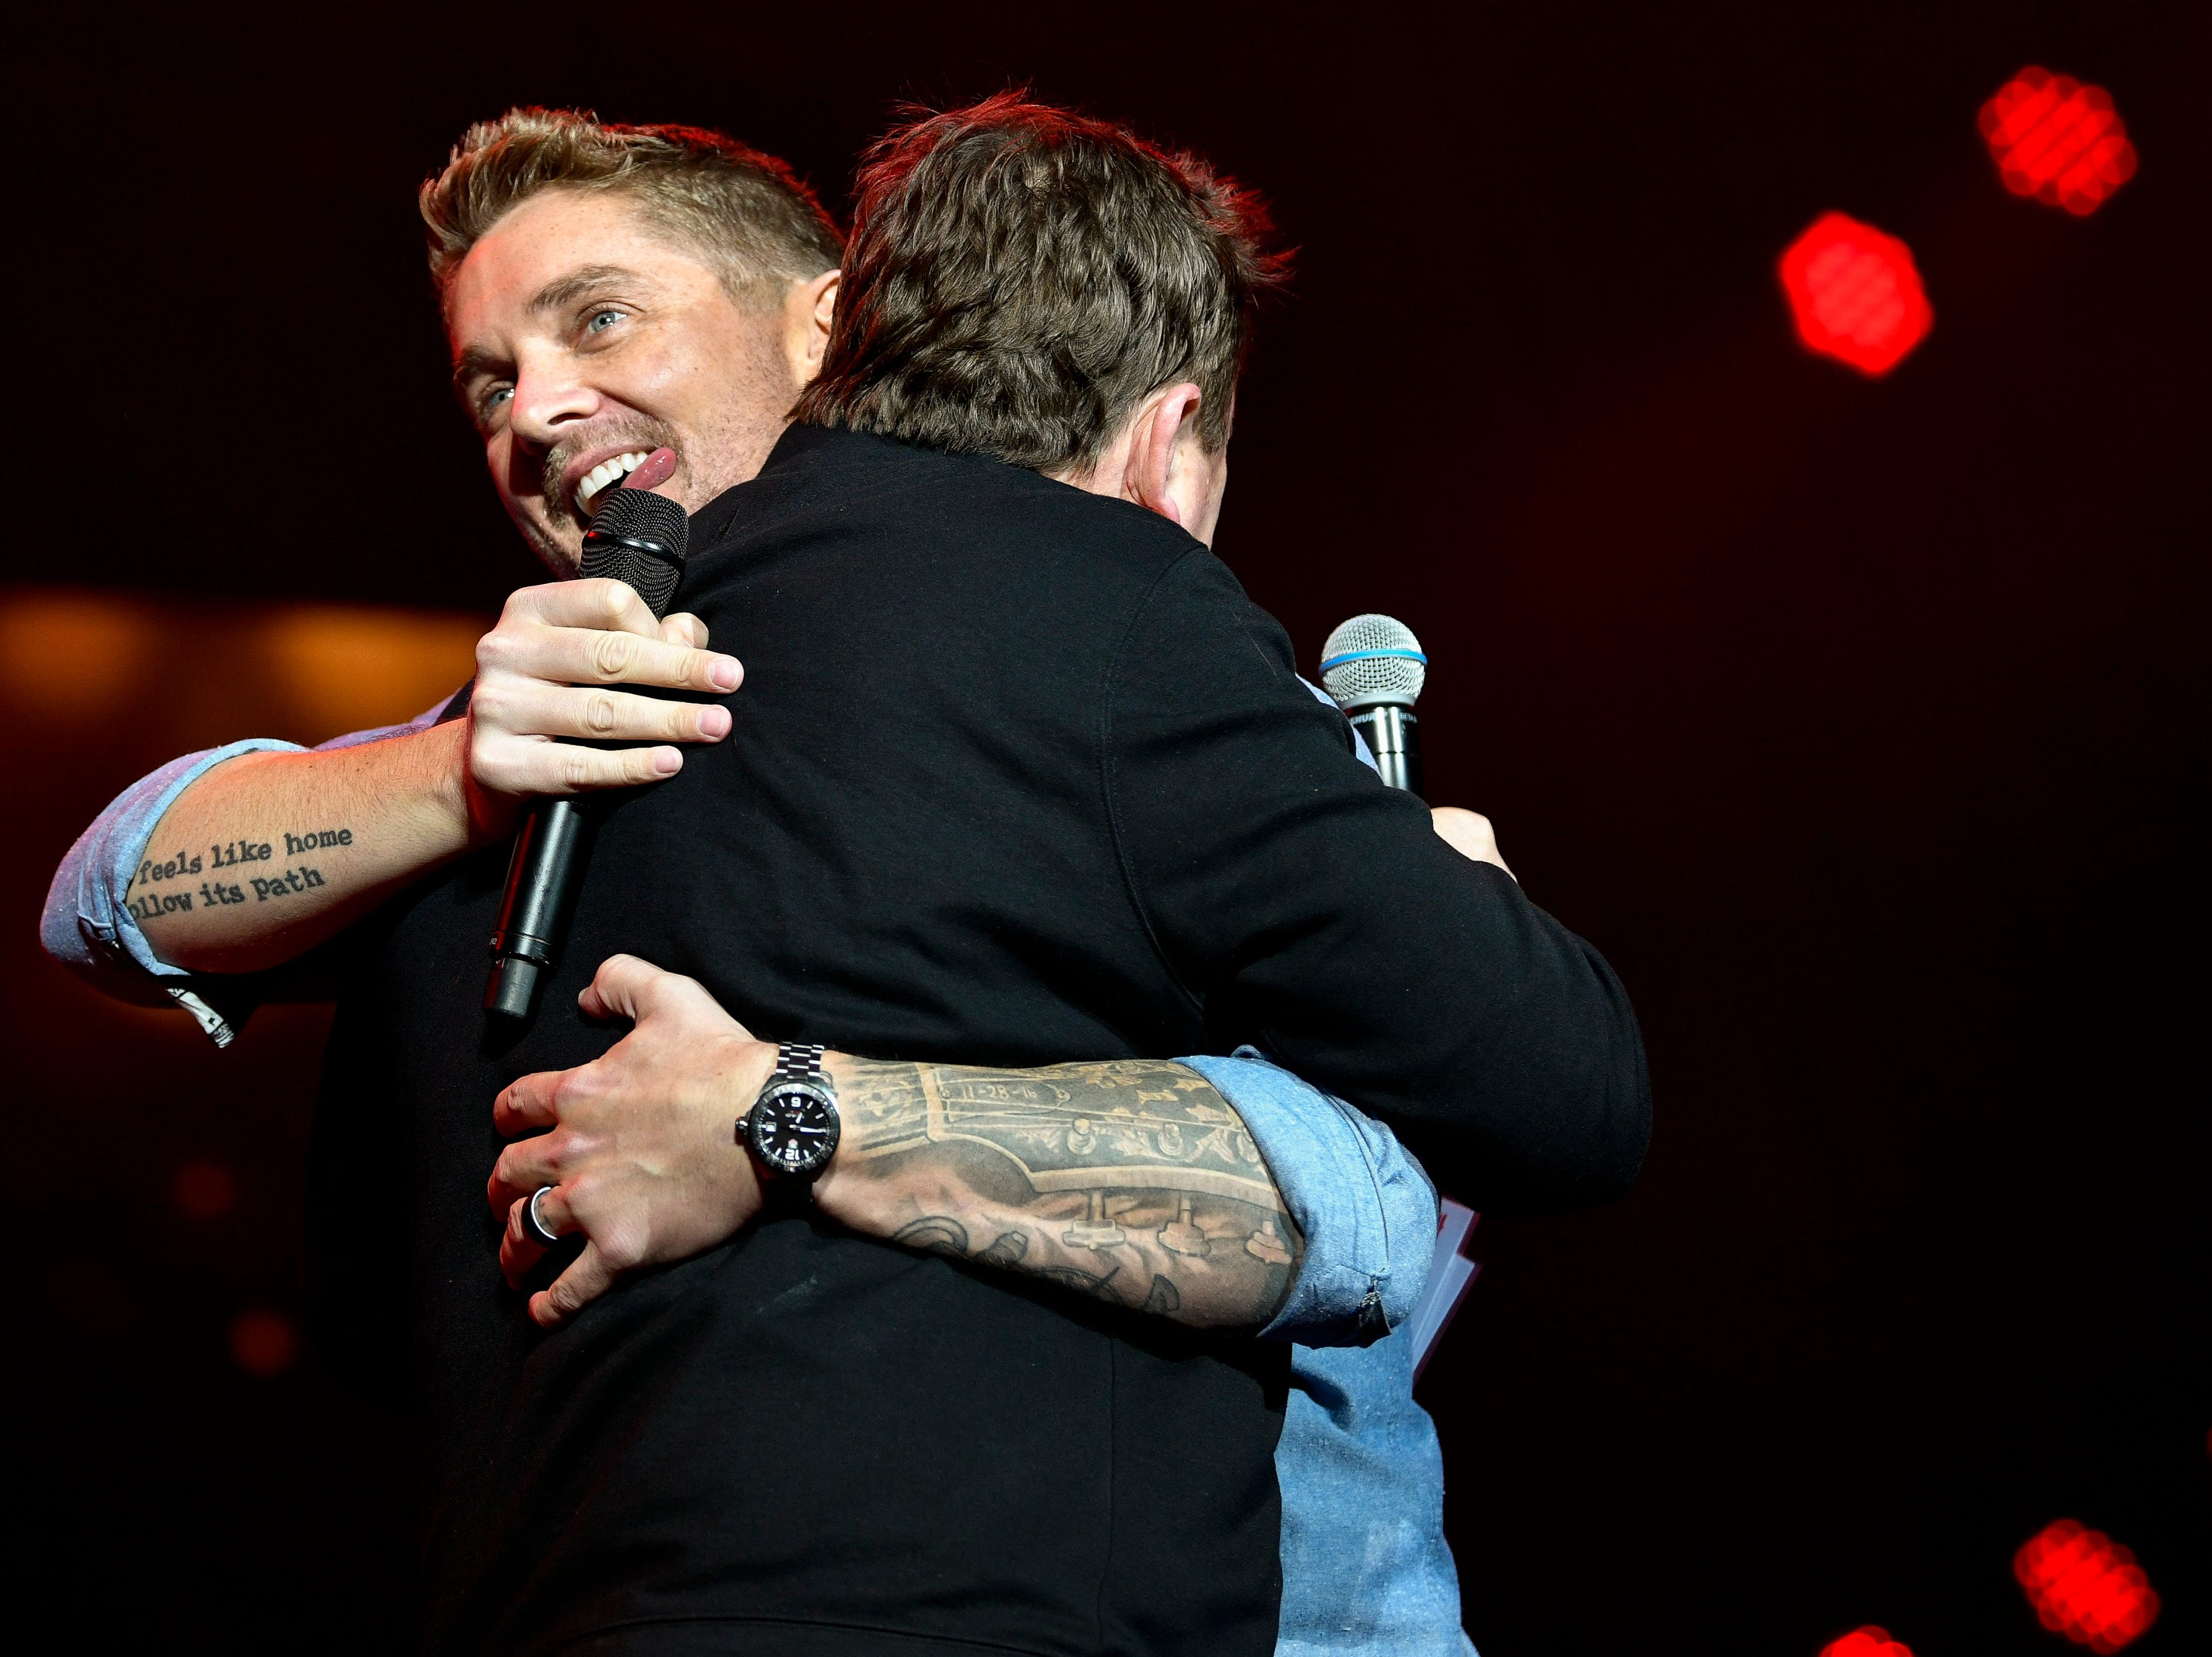 Brett Young, left, hugs Storme Warren, right, during the Jack Daniel's Music City Midnight: New Year's Eve event at Bicentennial Capitol Mall State Park in Nashville, Tenn., Monday, Dec. 31, 2018.